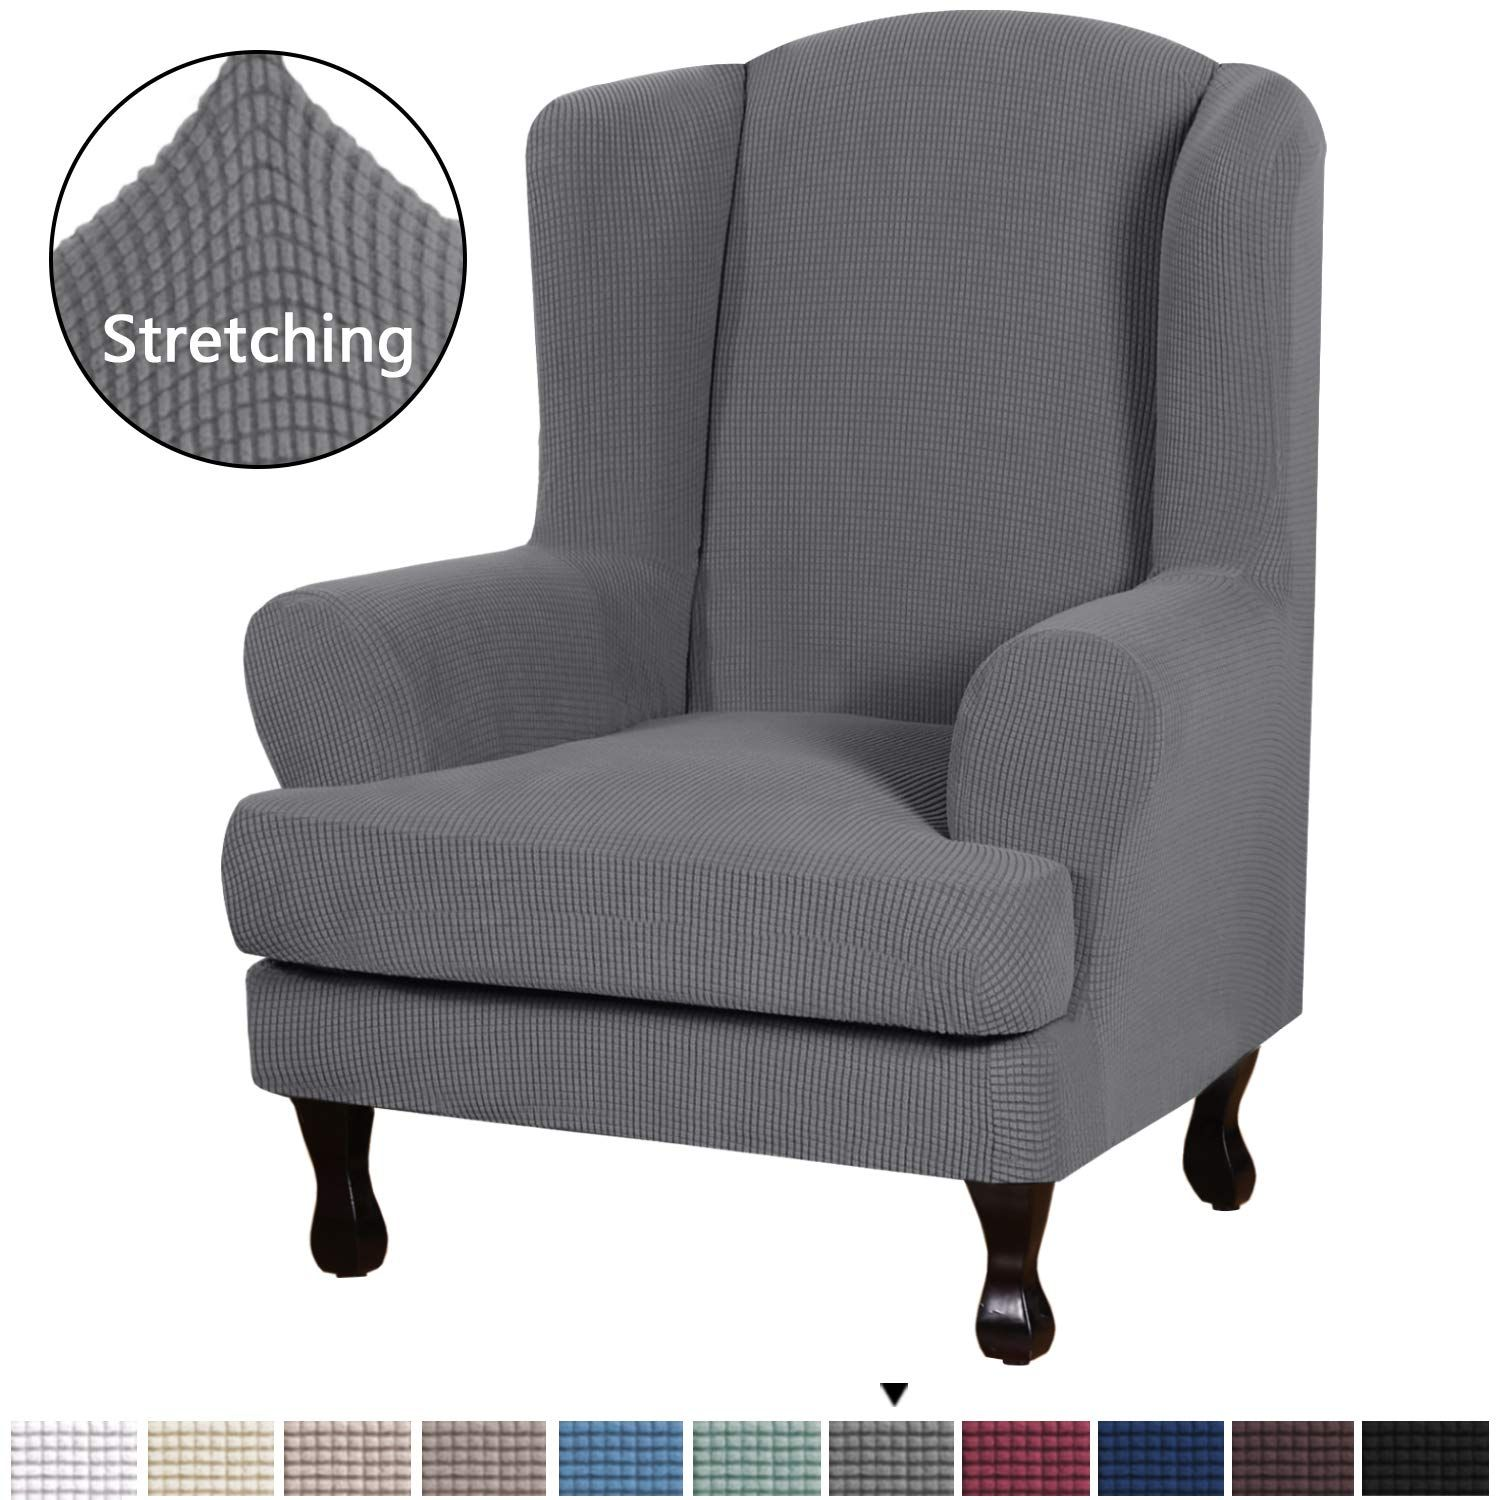 H Versailtex Durable Soft High Stretch Jacquard 2 Piece Wingback Chair Cover Charcoal Gray Couch Covers Lycra F Slipcovers Wingback Chair Wingback Chair Covers